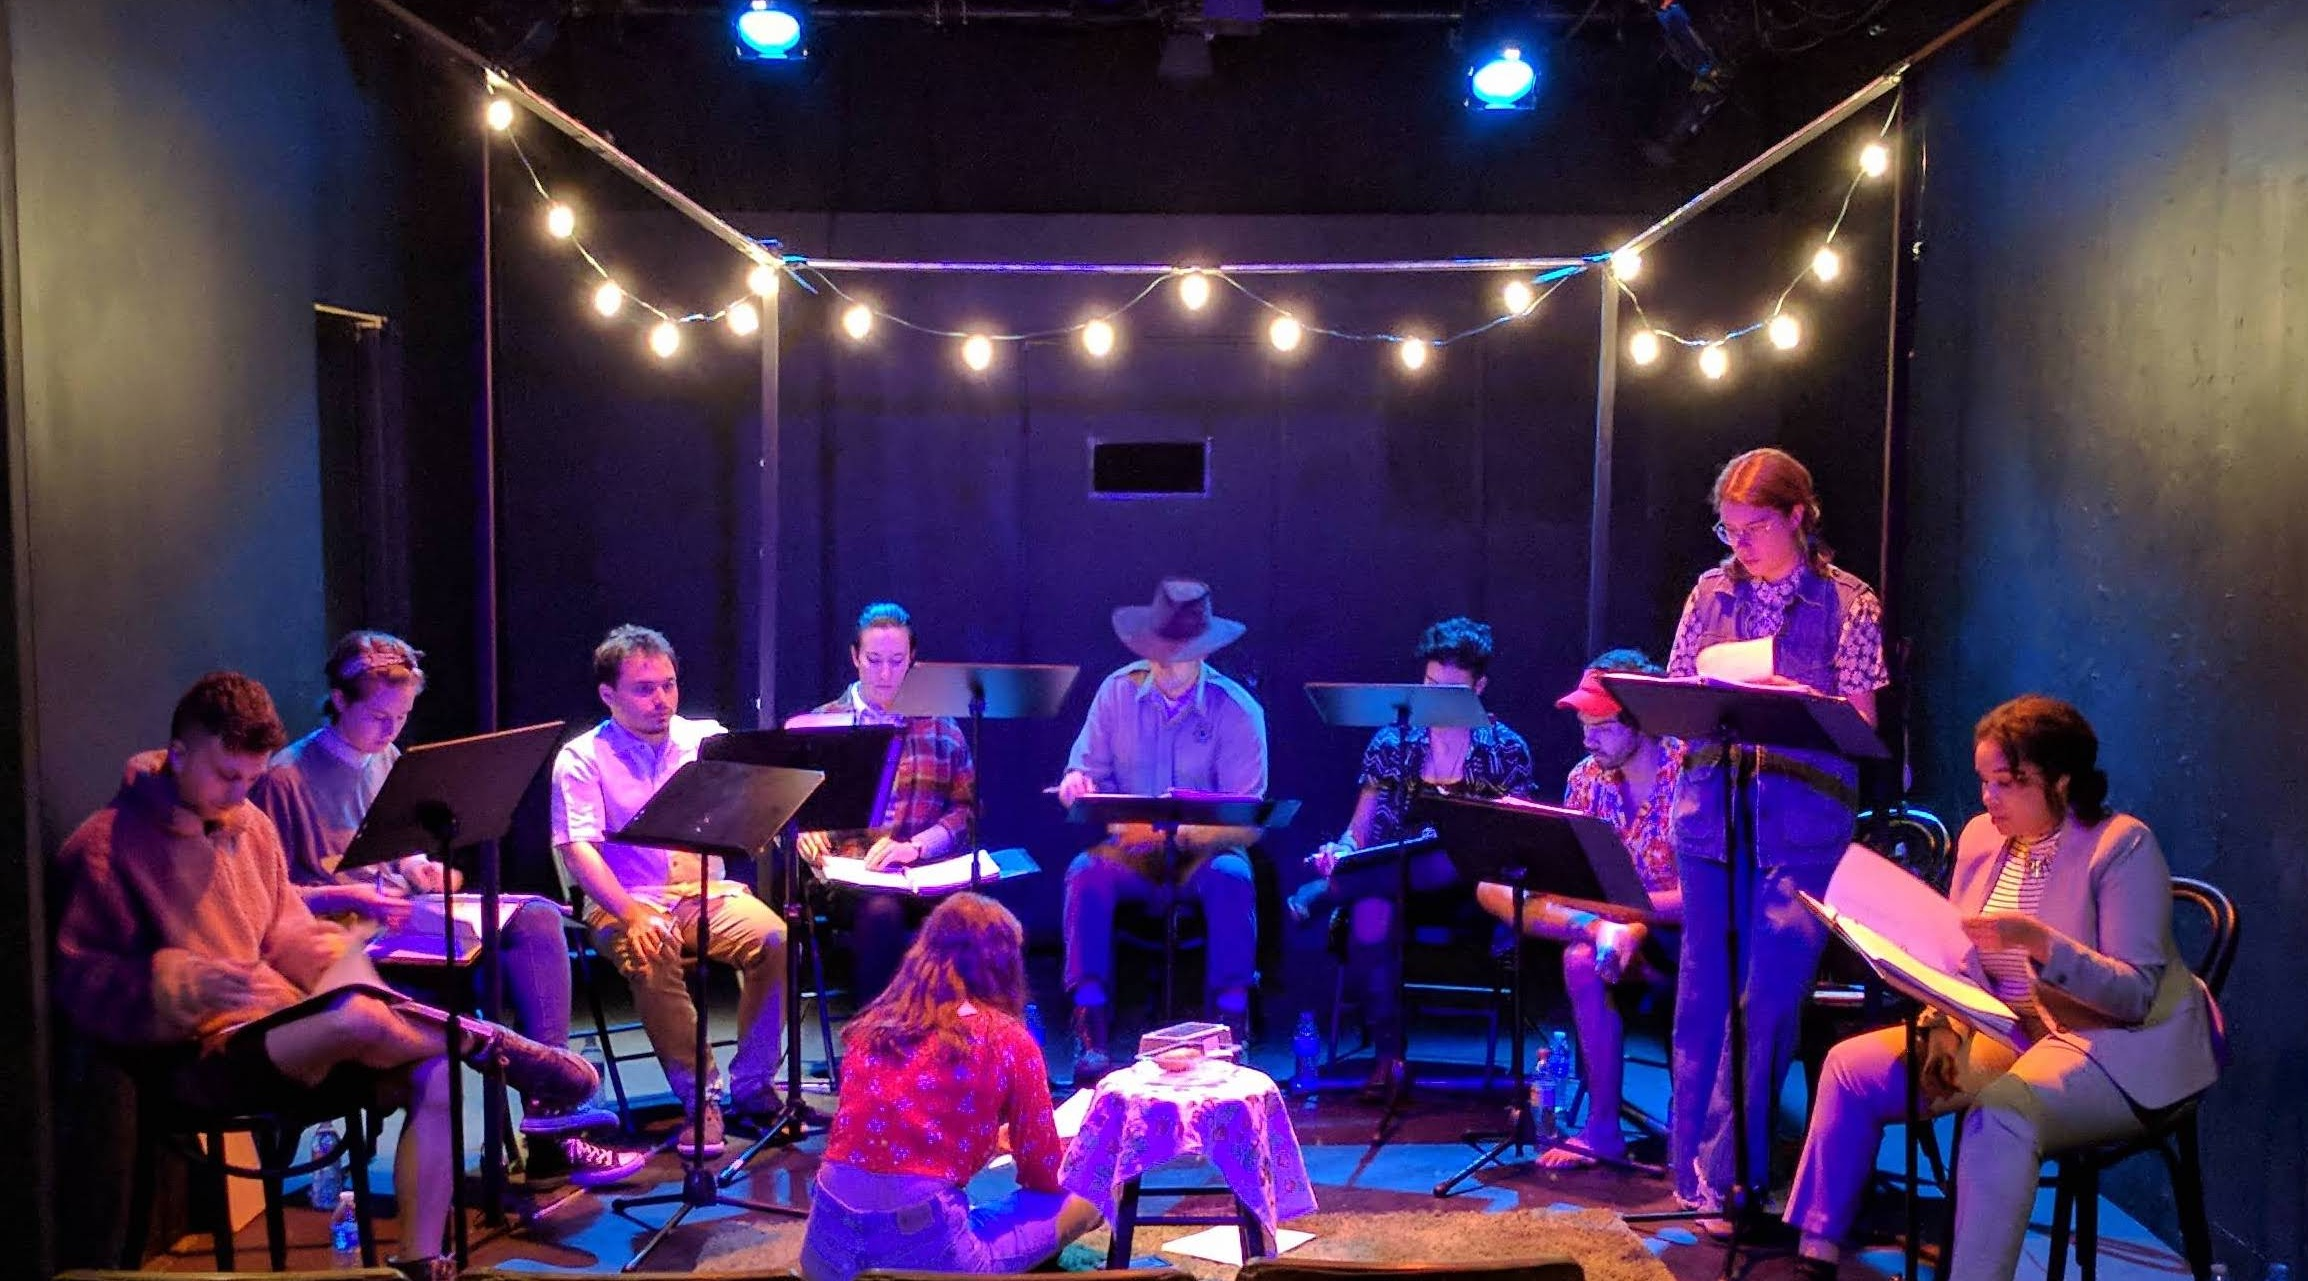 Brandon Blum, Kat Devoe-Peterson, Luke Medina, Julia Finch, Conor Murphy, Victoria Ortiz, Tyler Bremer, Meg Cashel, Taylor Bennett, and Rosie Glen-Lambert in tech for The Last Croissant staged reading.